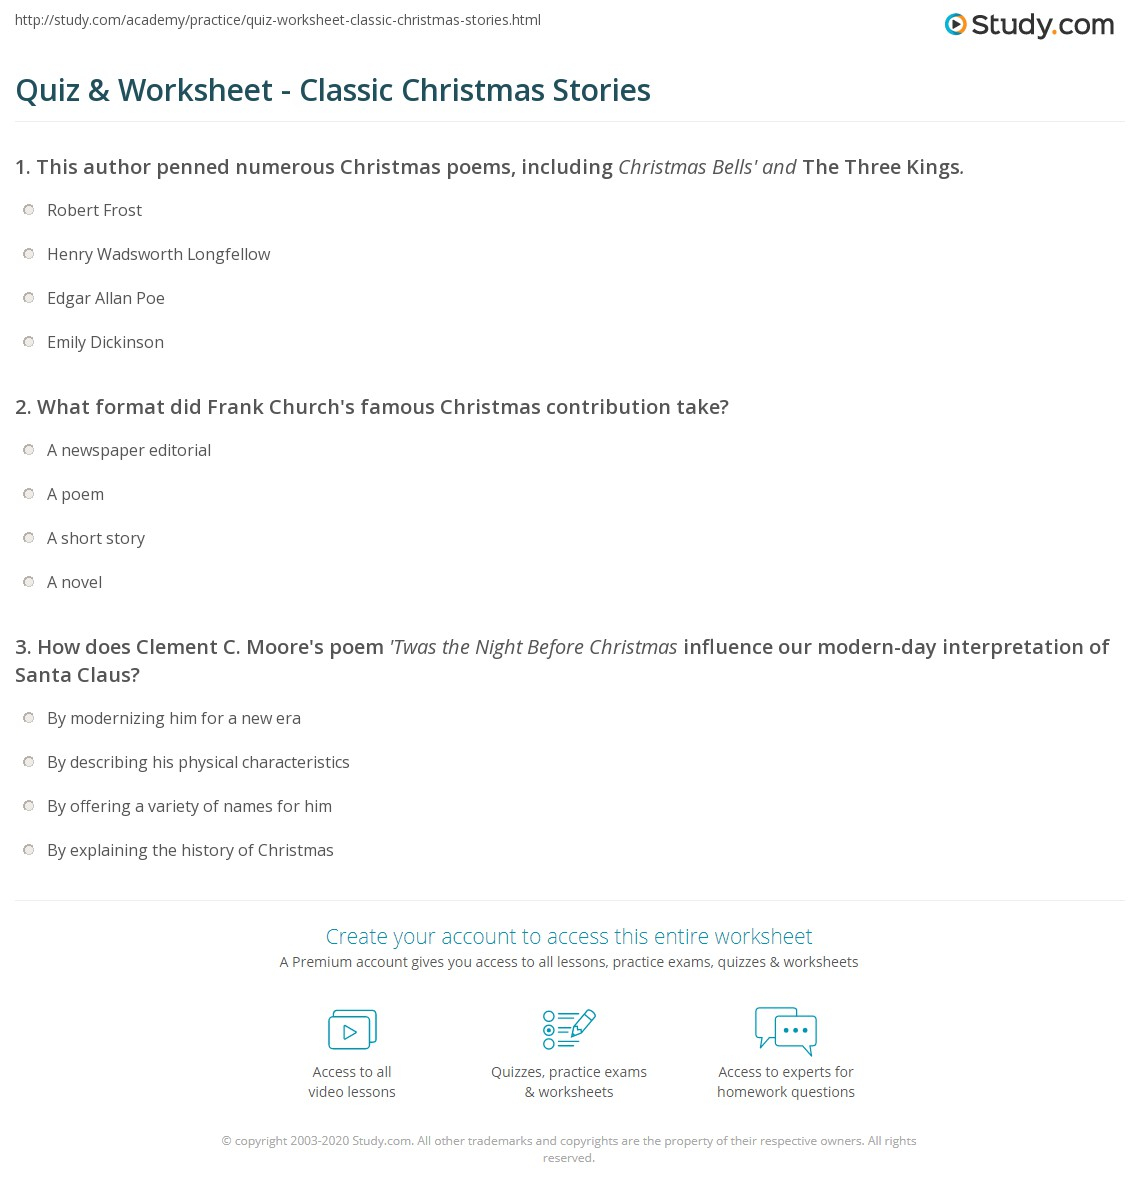 Quiz & Worksheet - Classic Christmas Stories | Study